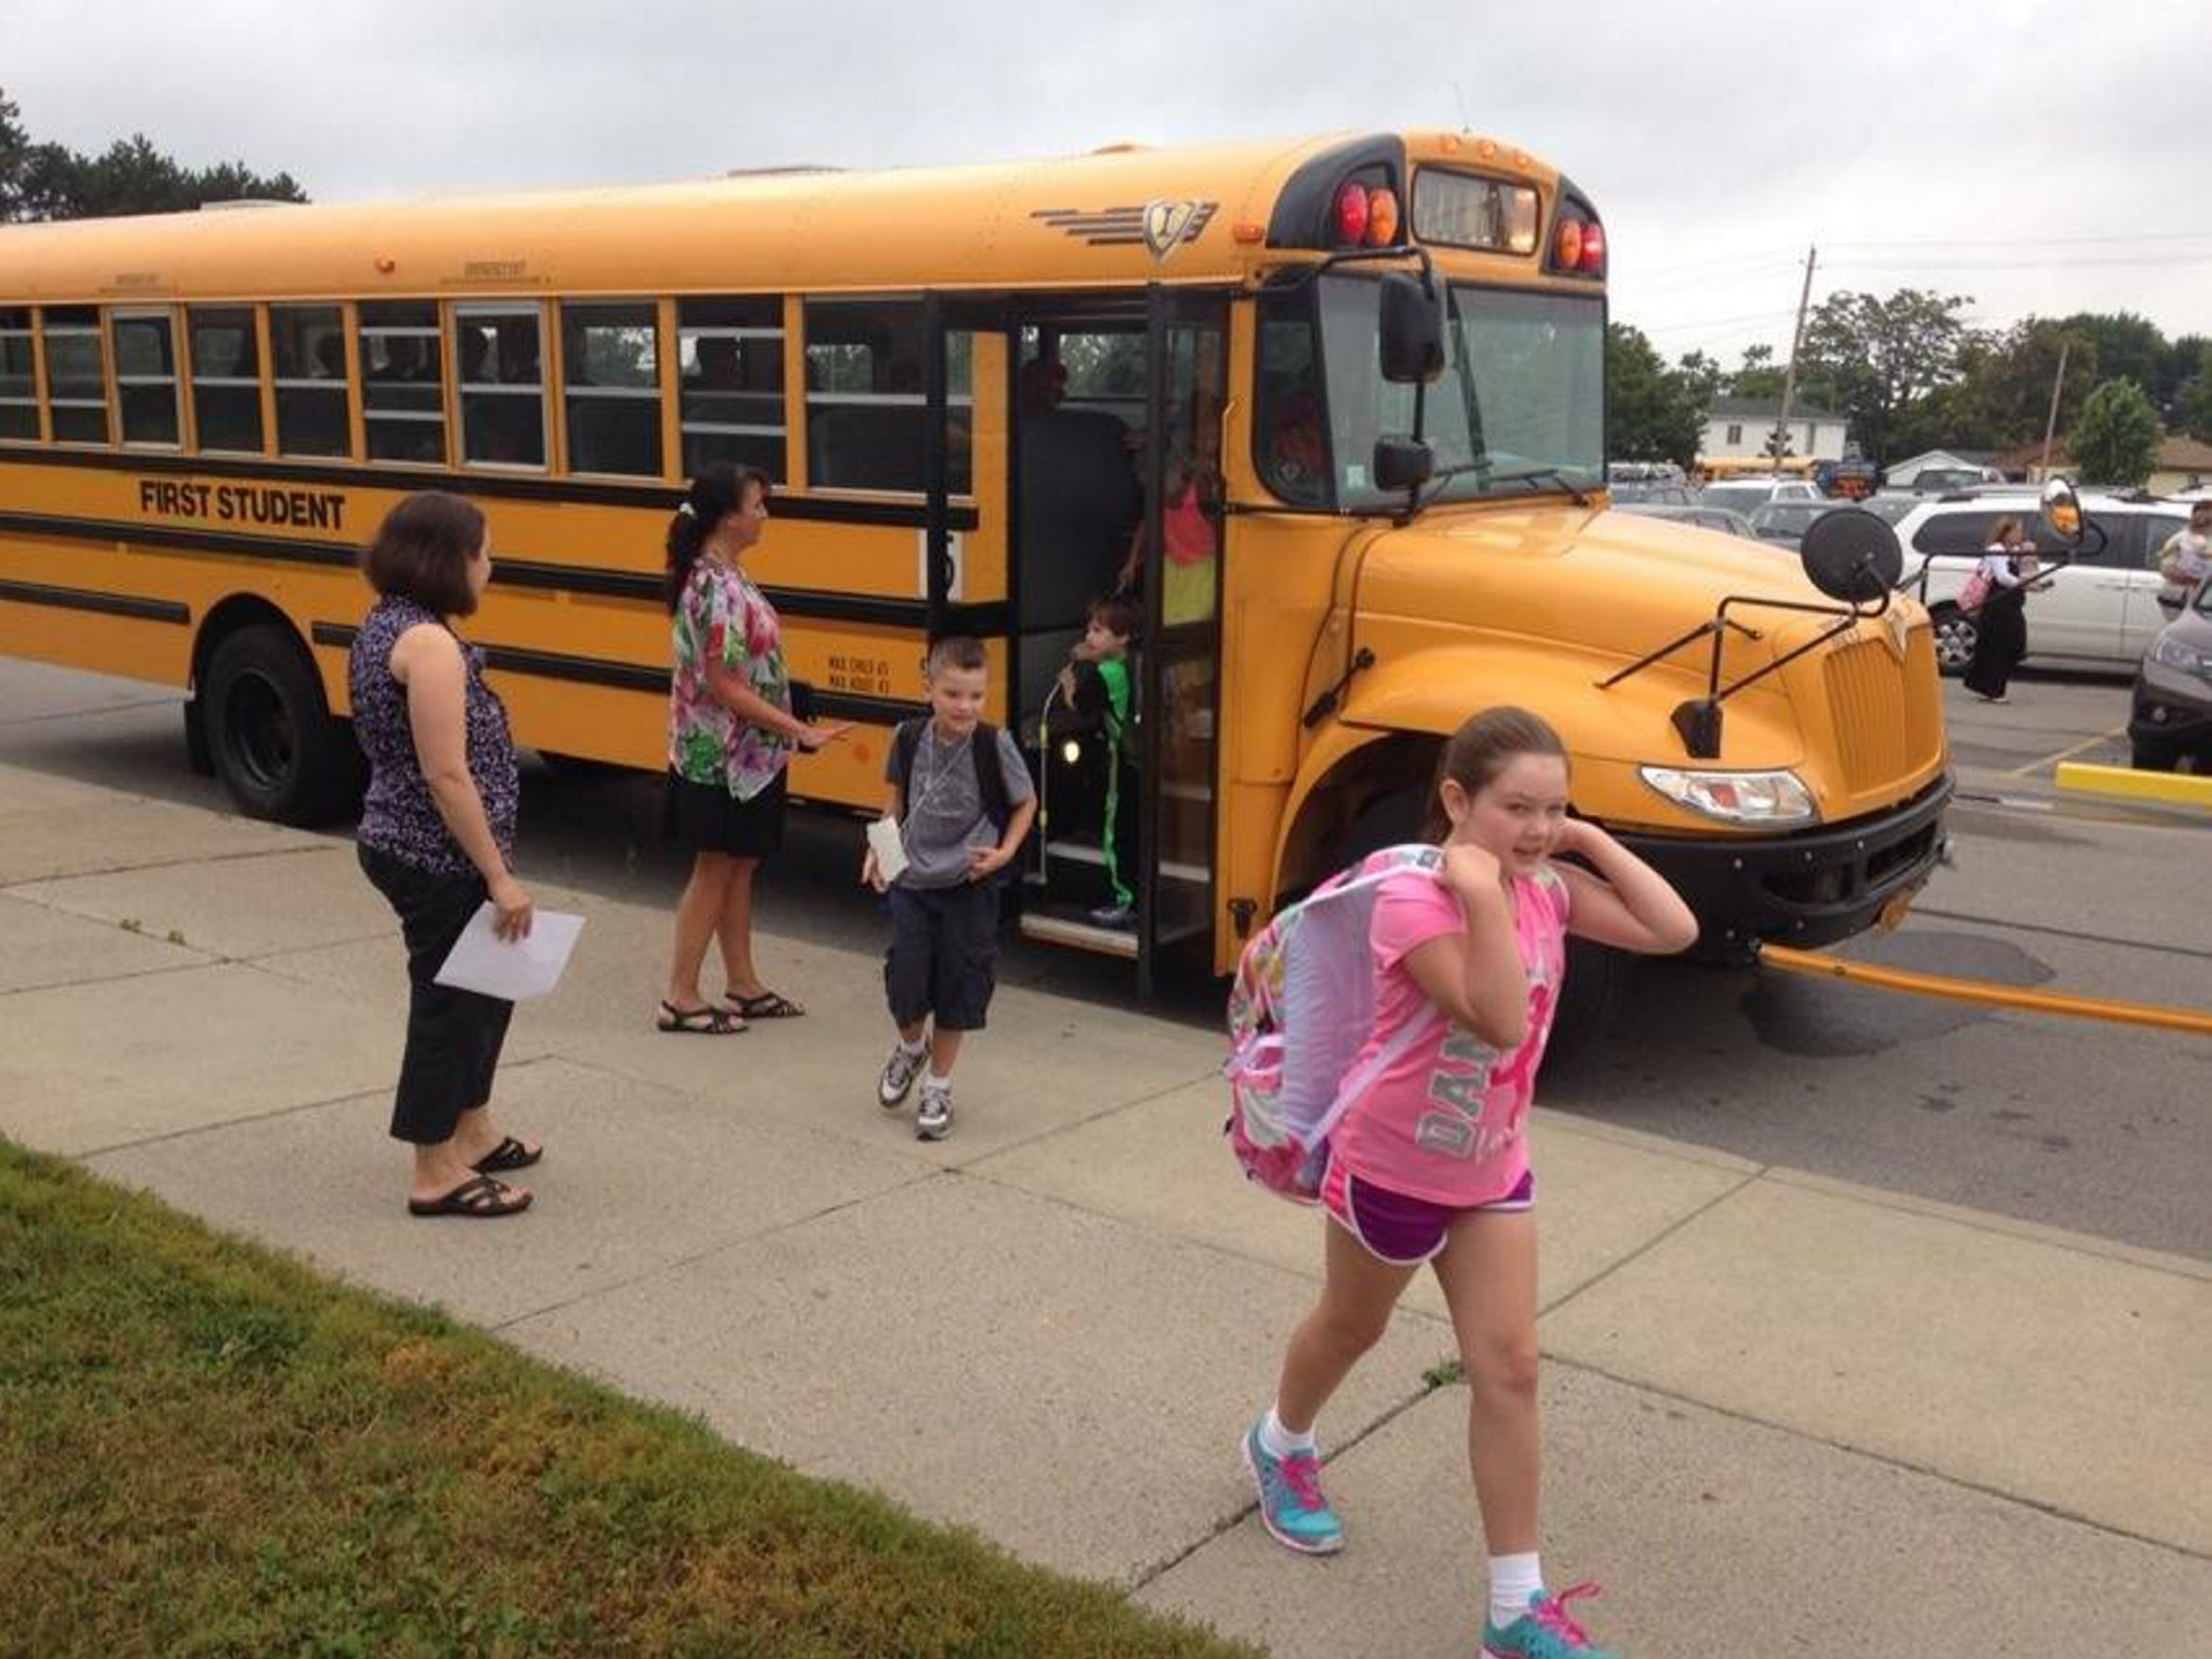 Students arrive for the first day of school today at Potters Road Elementary in West Seneca. (John Hickey/Buffalo News)